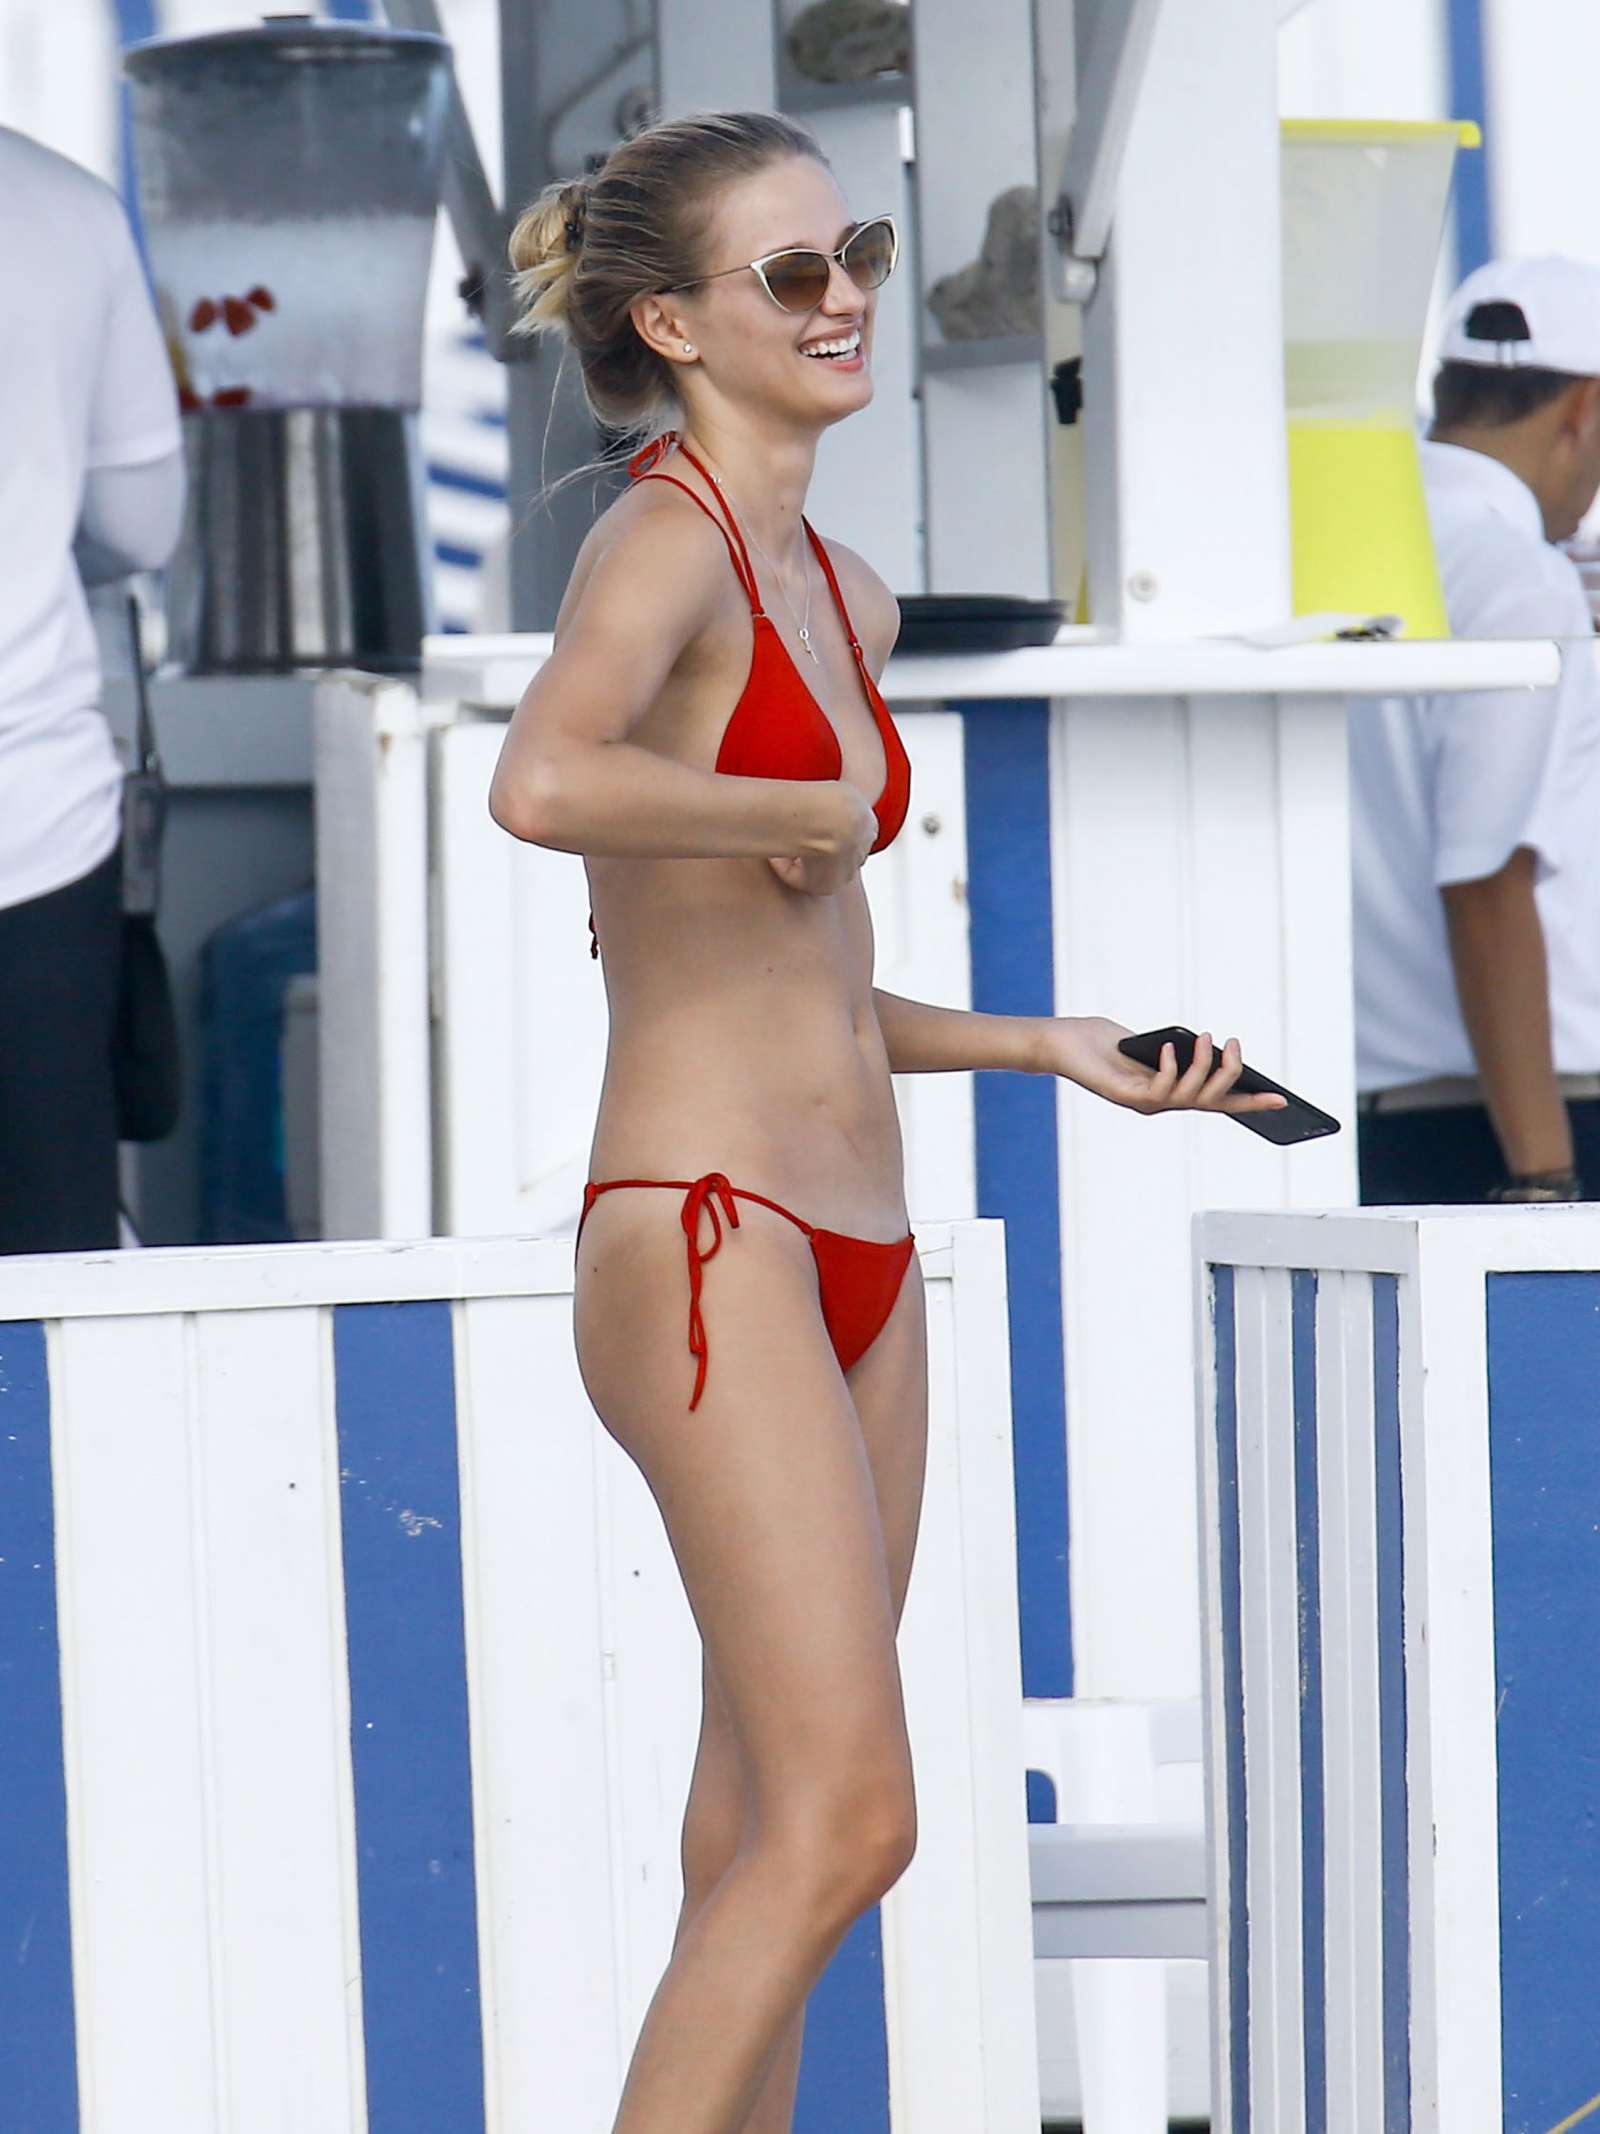 Xenia Micsanschi in Red Bikini on the beach in Miami